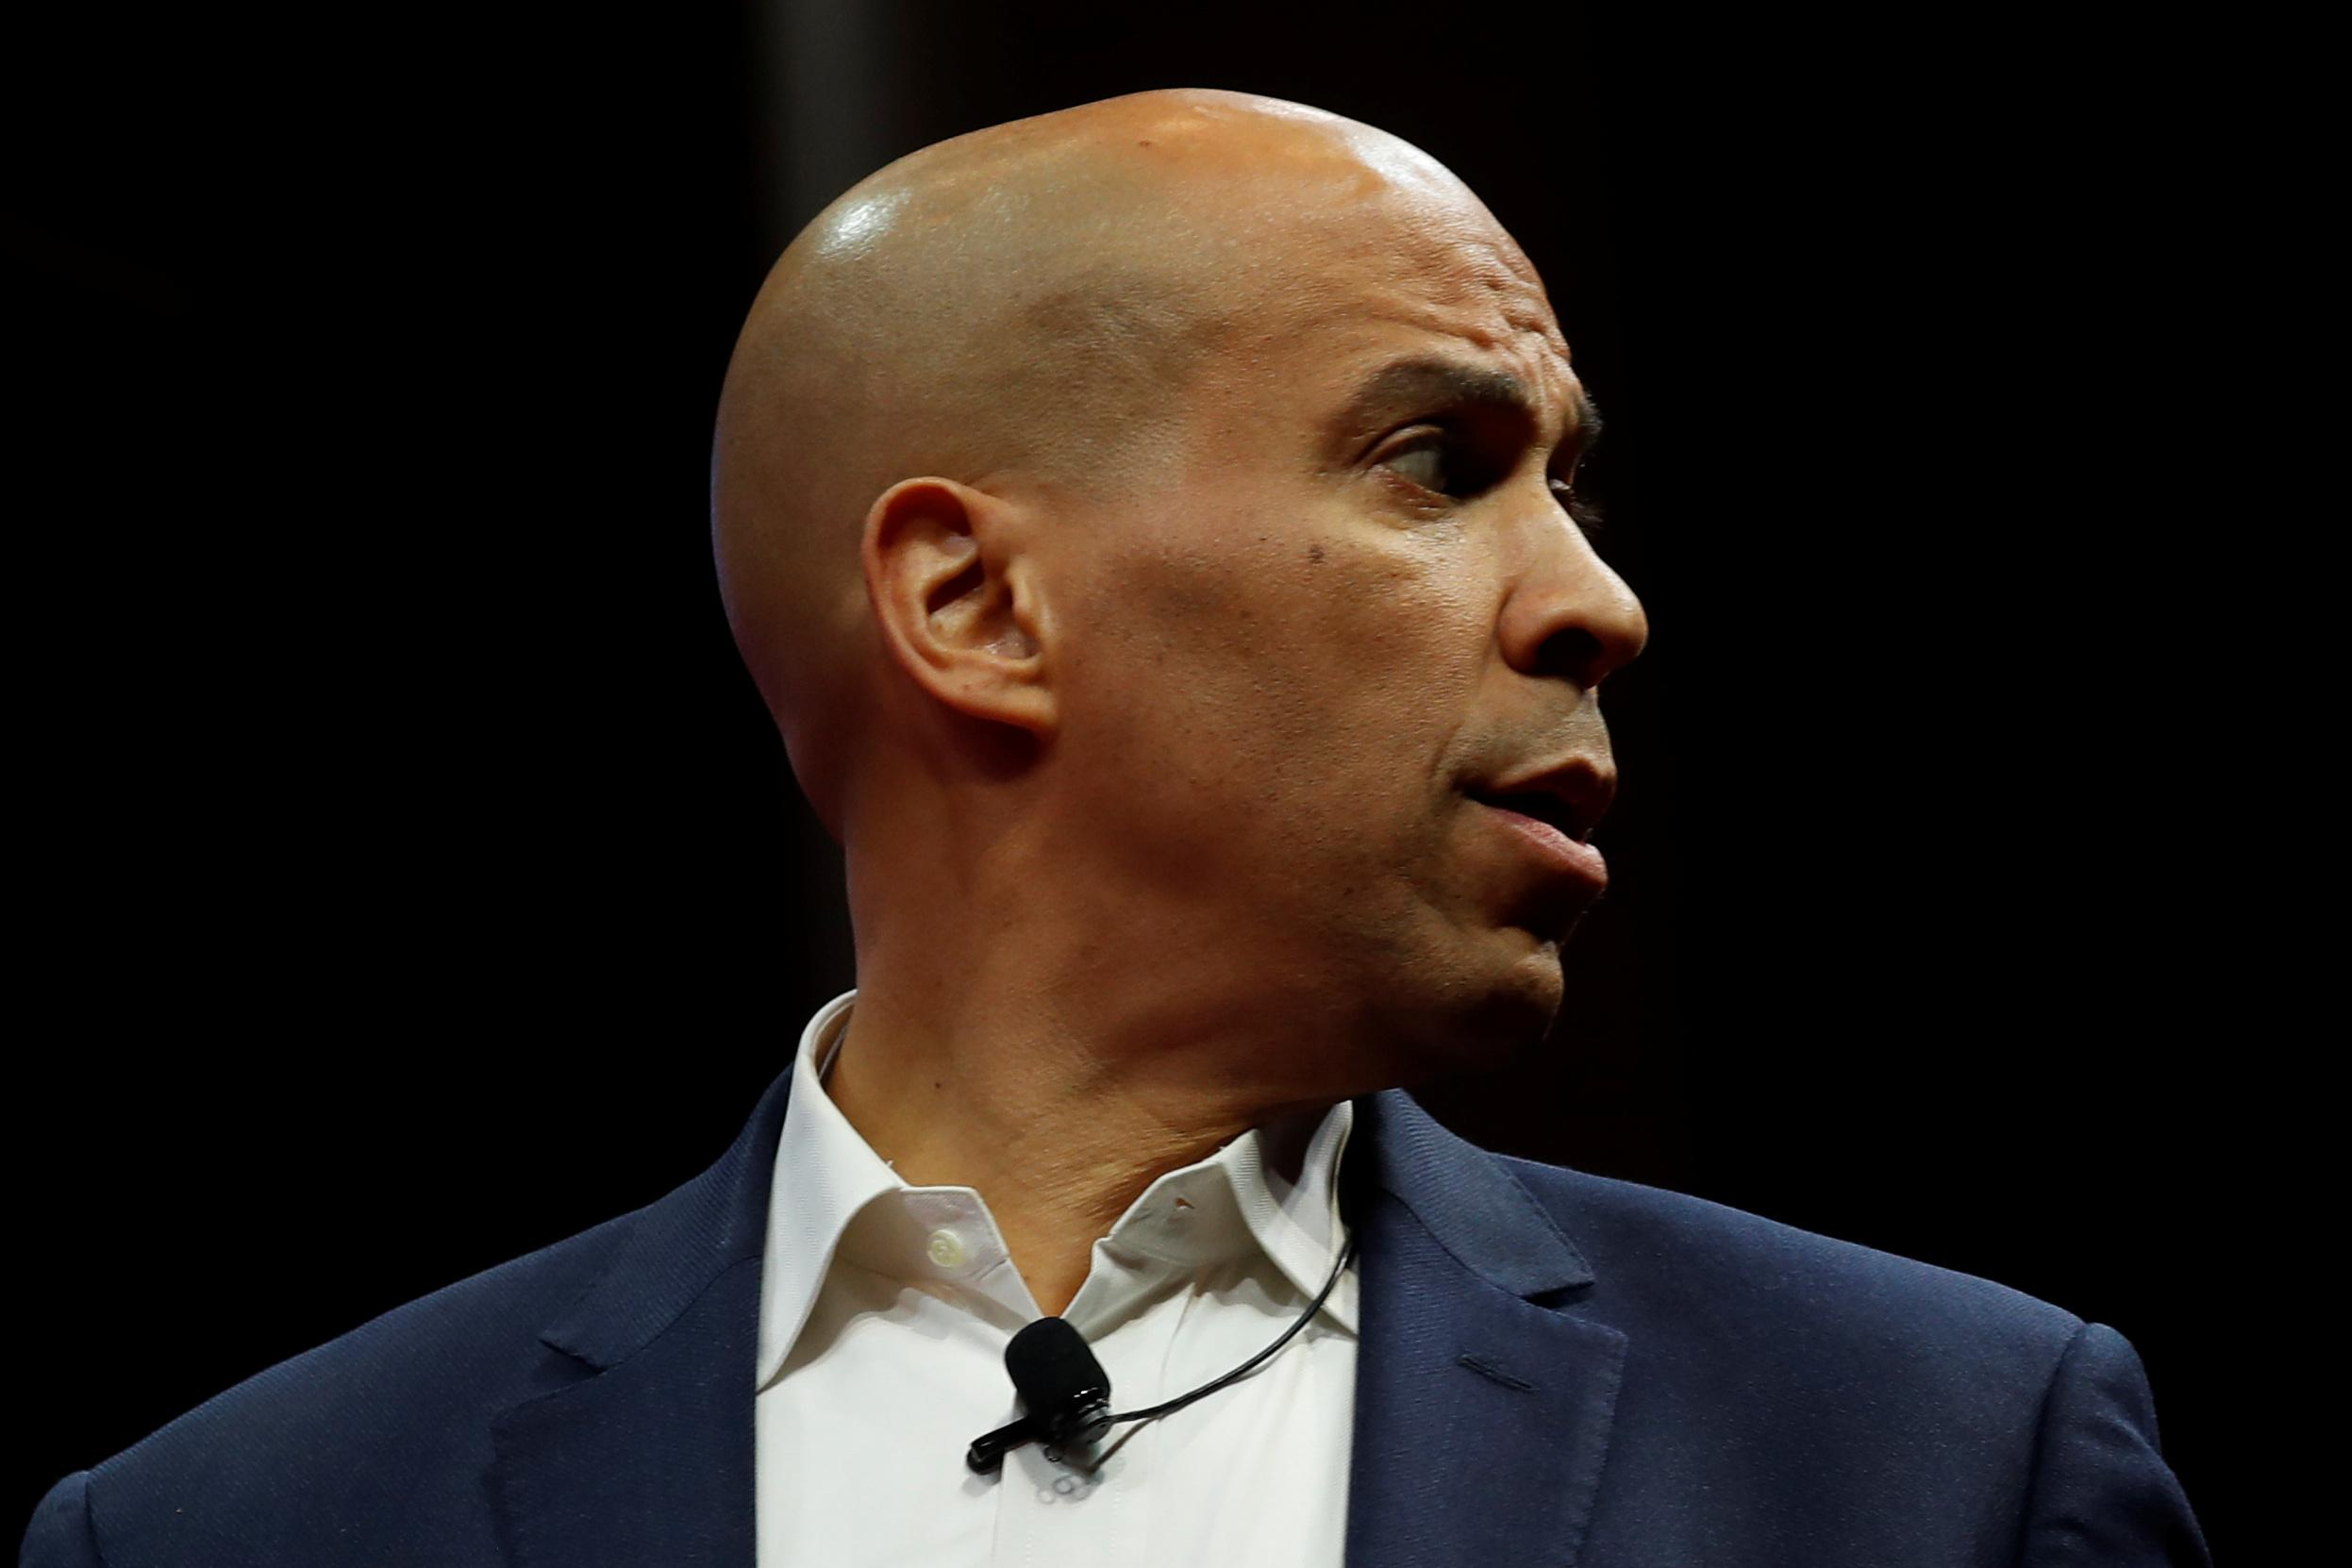 Democrat Booker doubling down in Iowa after failing to make debate